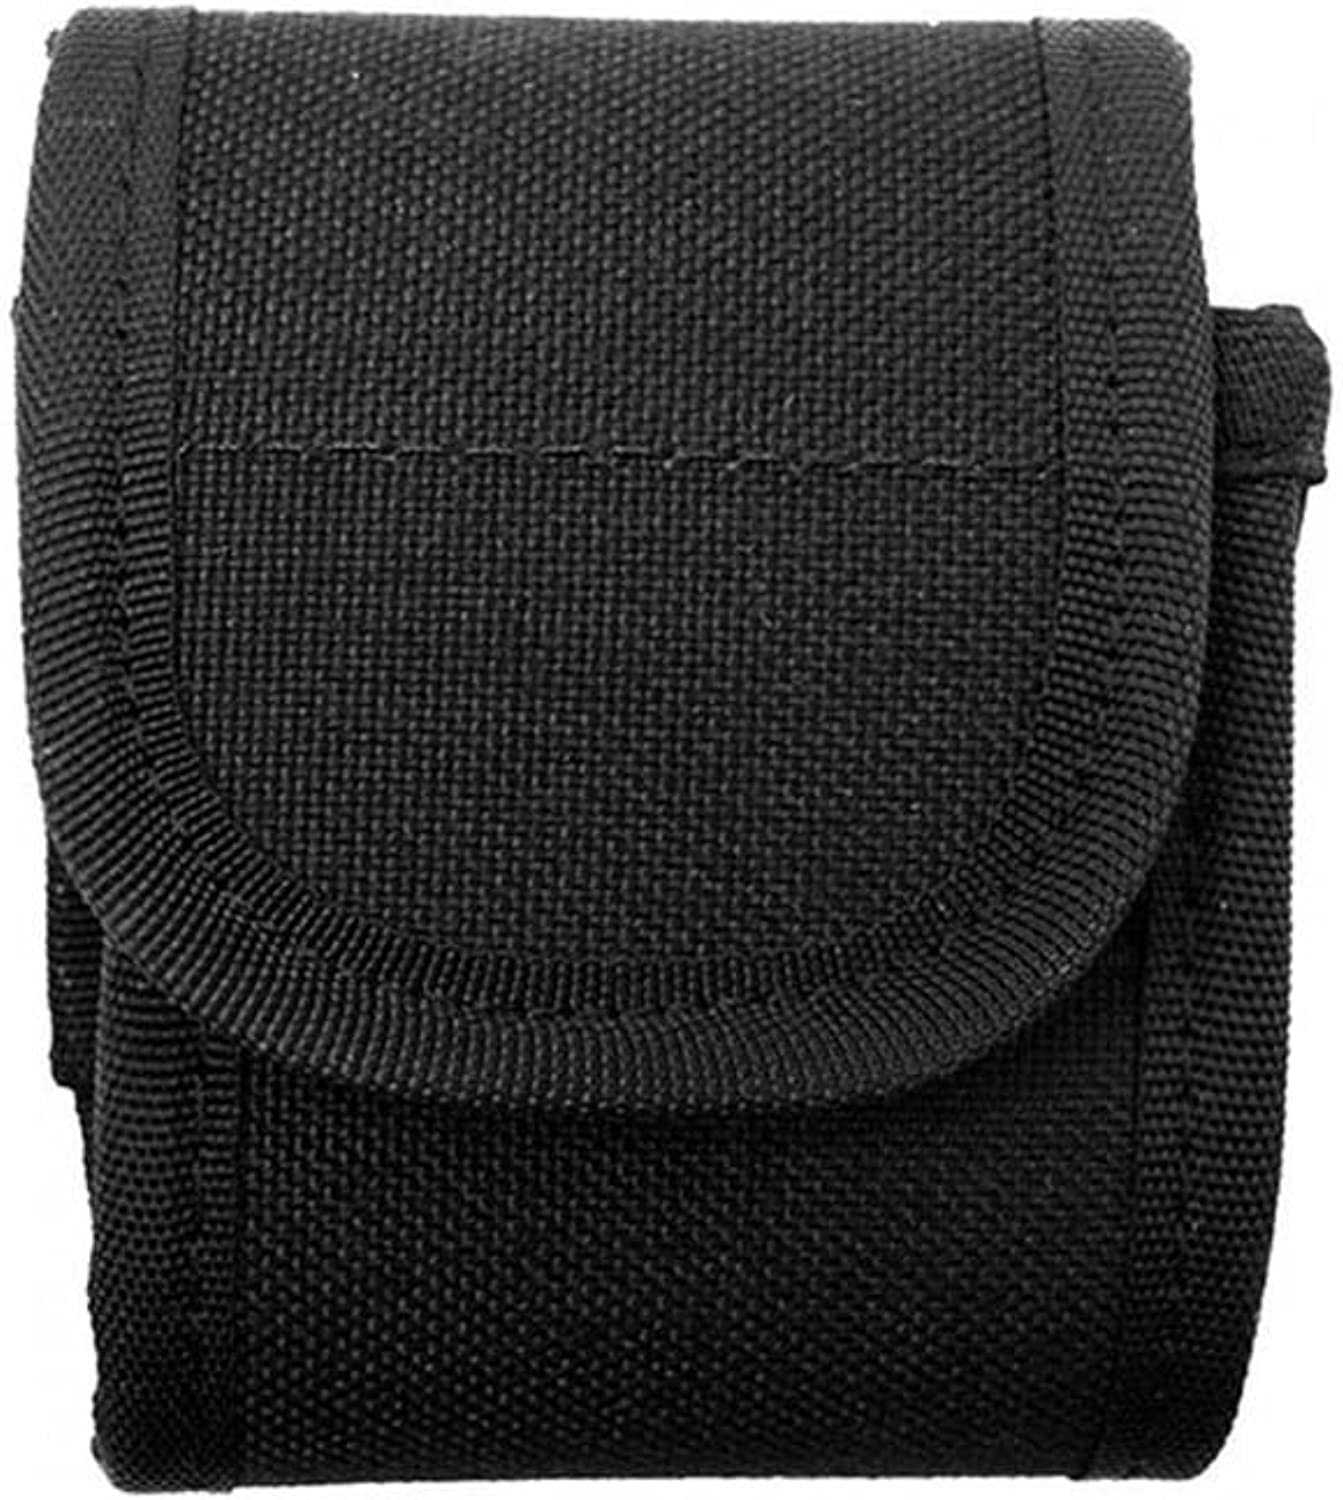 Uncle Mike's Mirage Basketweave Snap Close Duty Pager Case (Medium, Black)